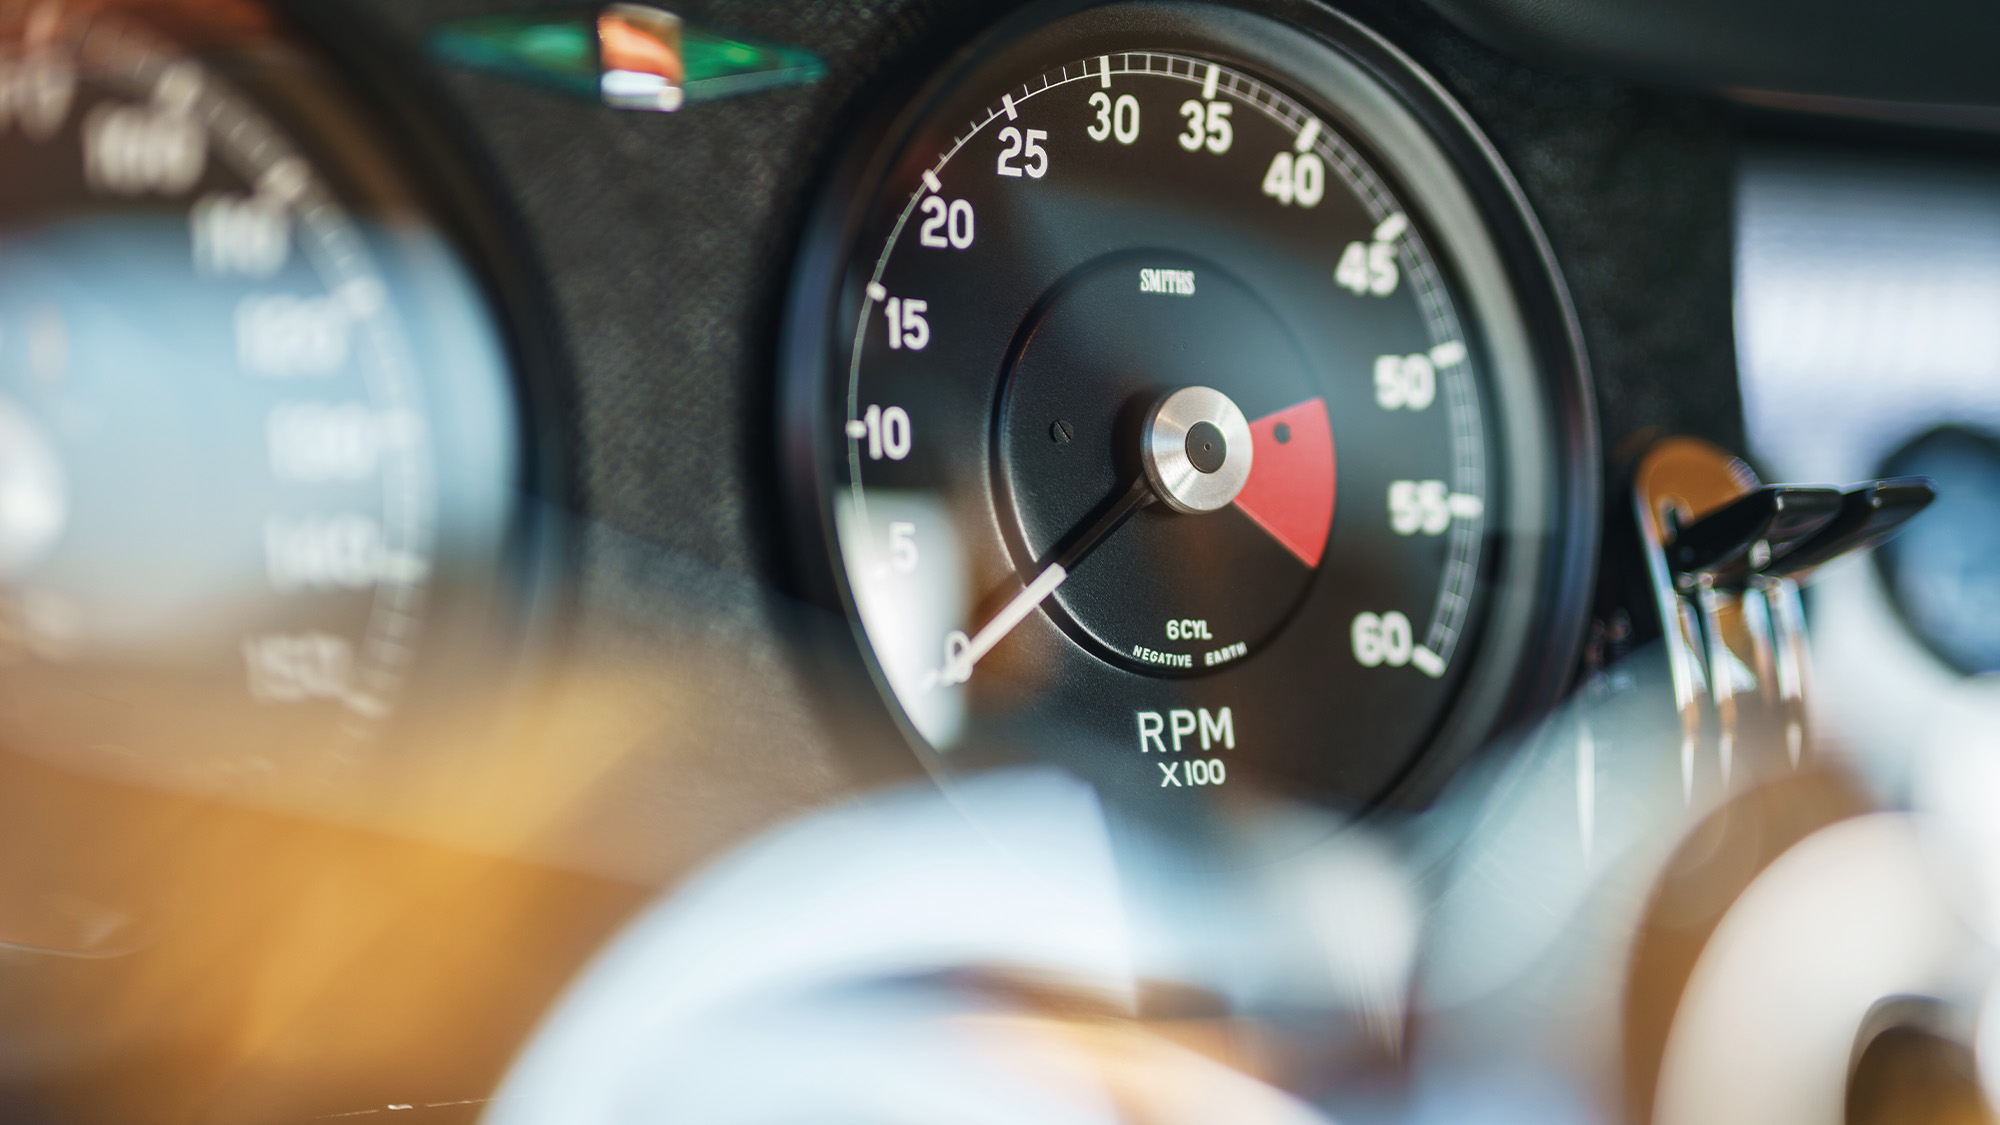 Speedometer of the 2020 Eagle E-type Lightweight GT